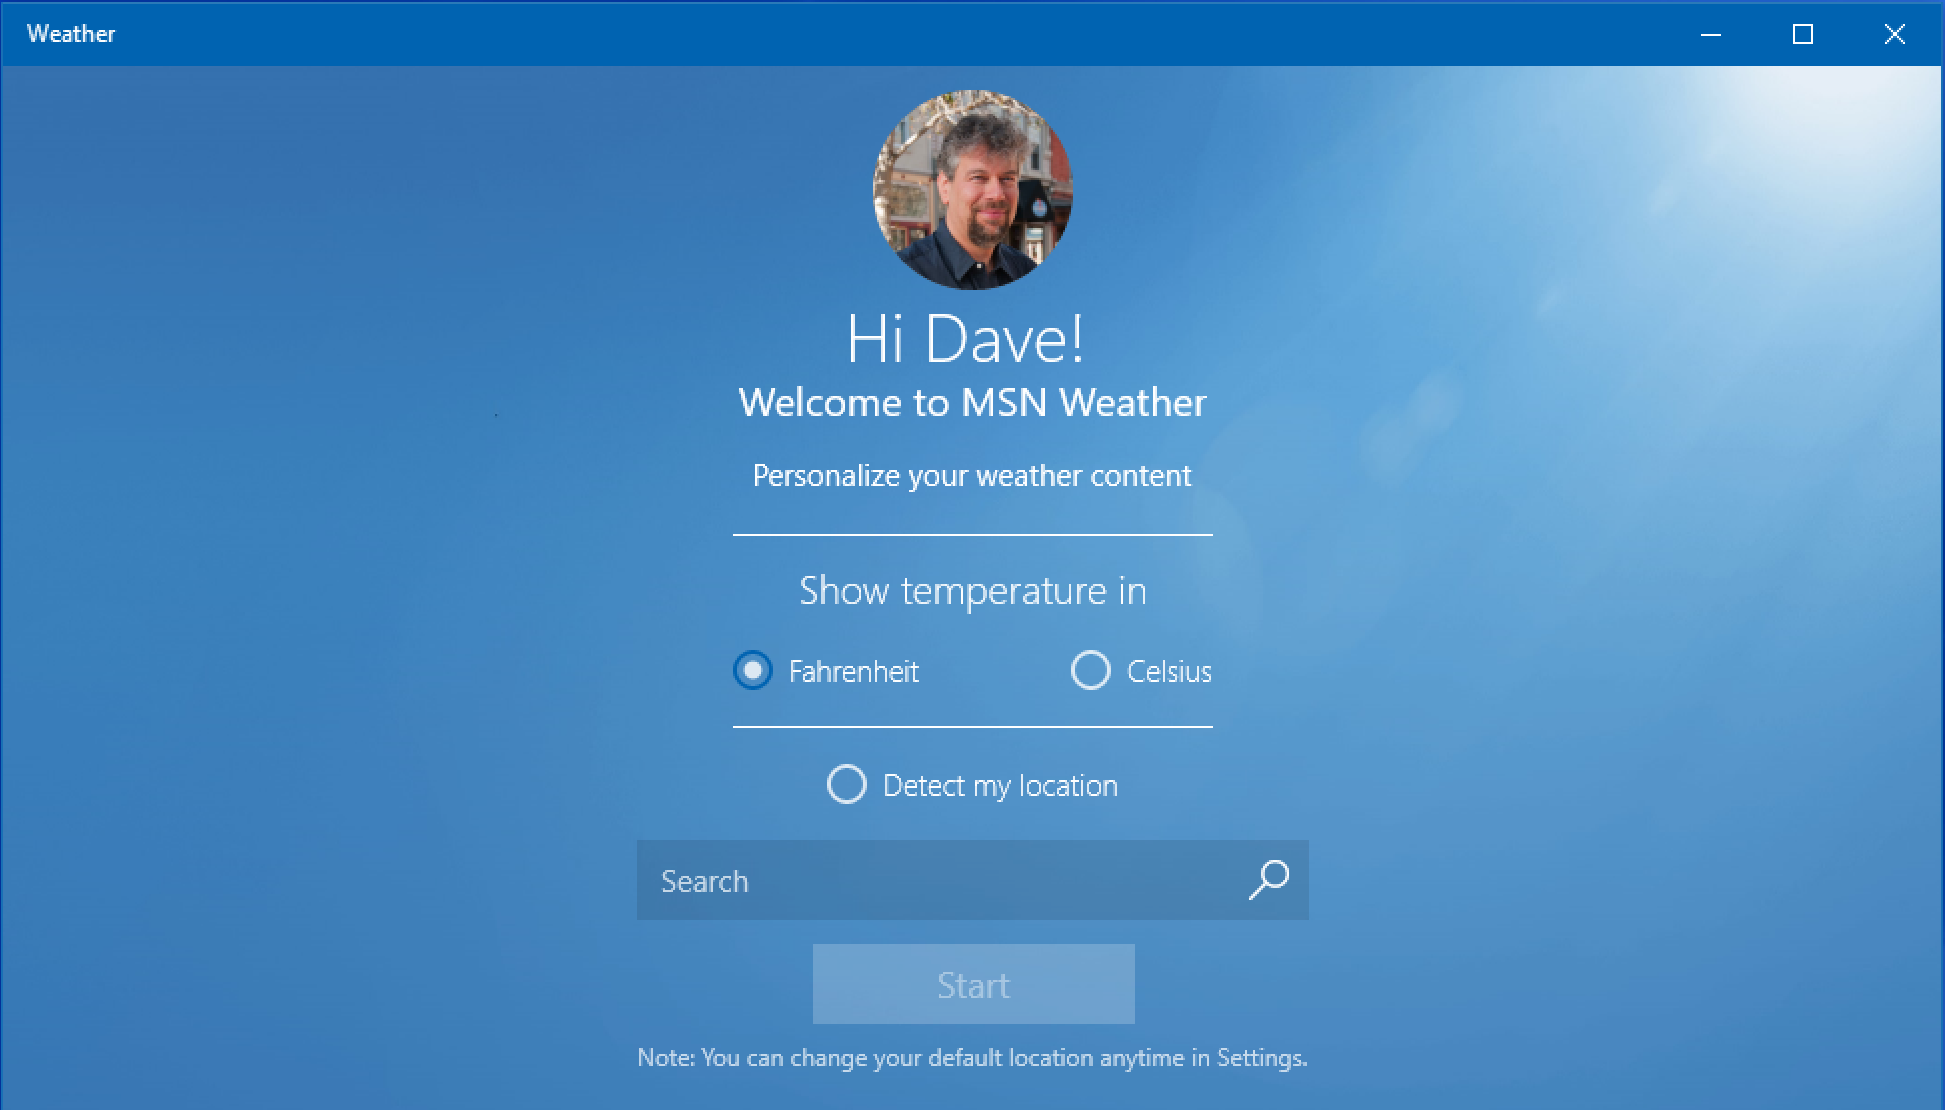 win10 weather program - no location set